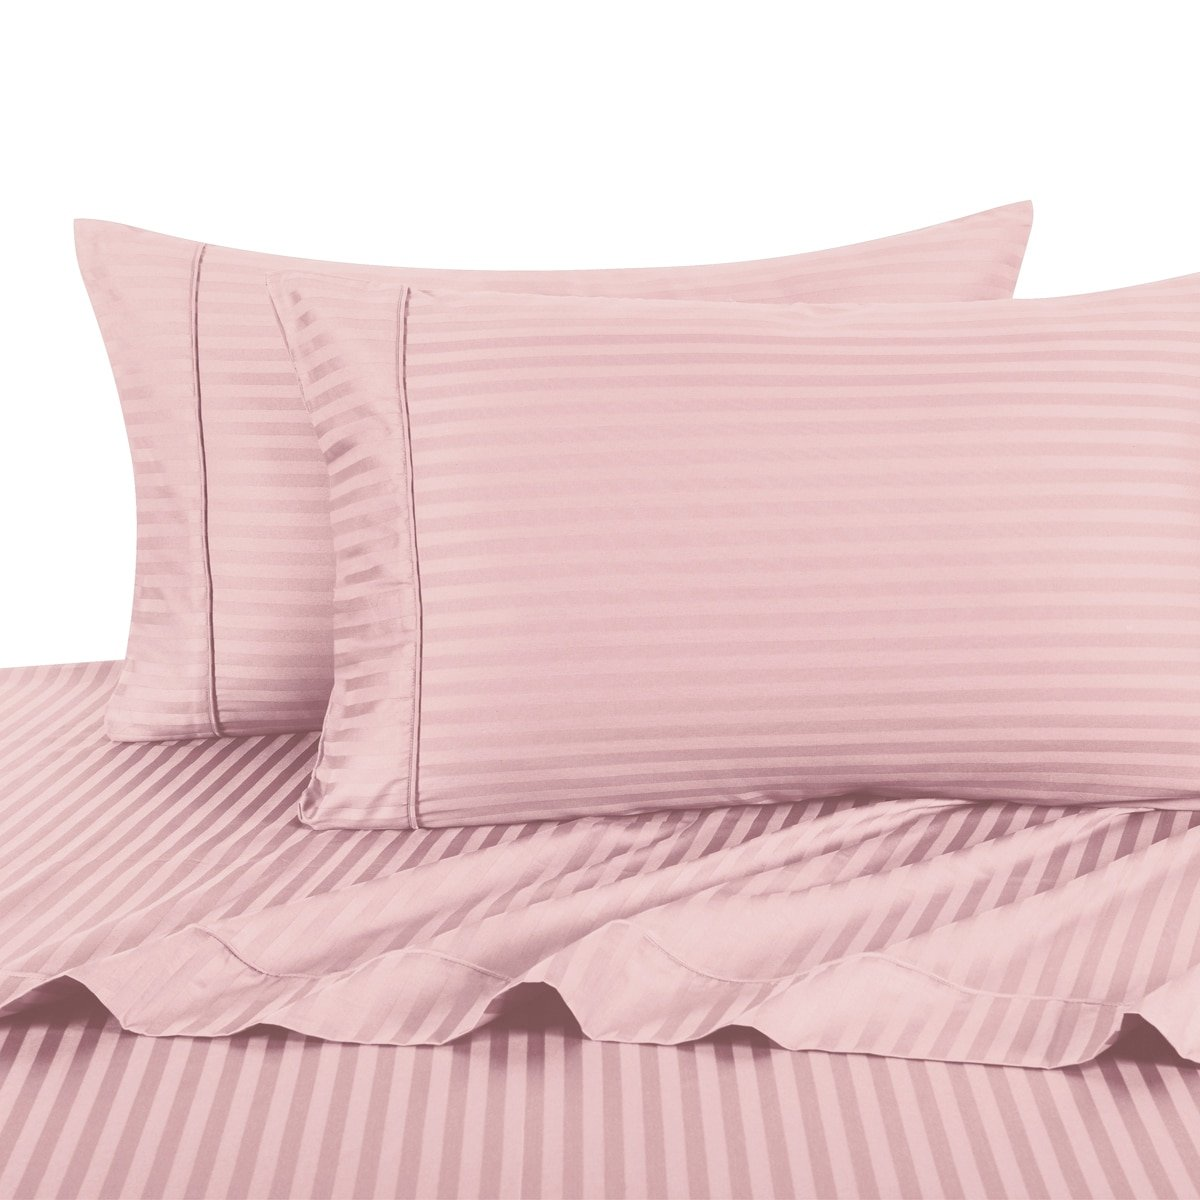 Sheetsnthings 100% Cotton Bed Sheet Set, 300 Thread Count - Split King, Blush Stripes - Deep Pocket, 5PC Sheets